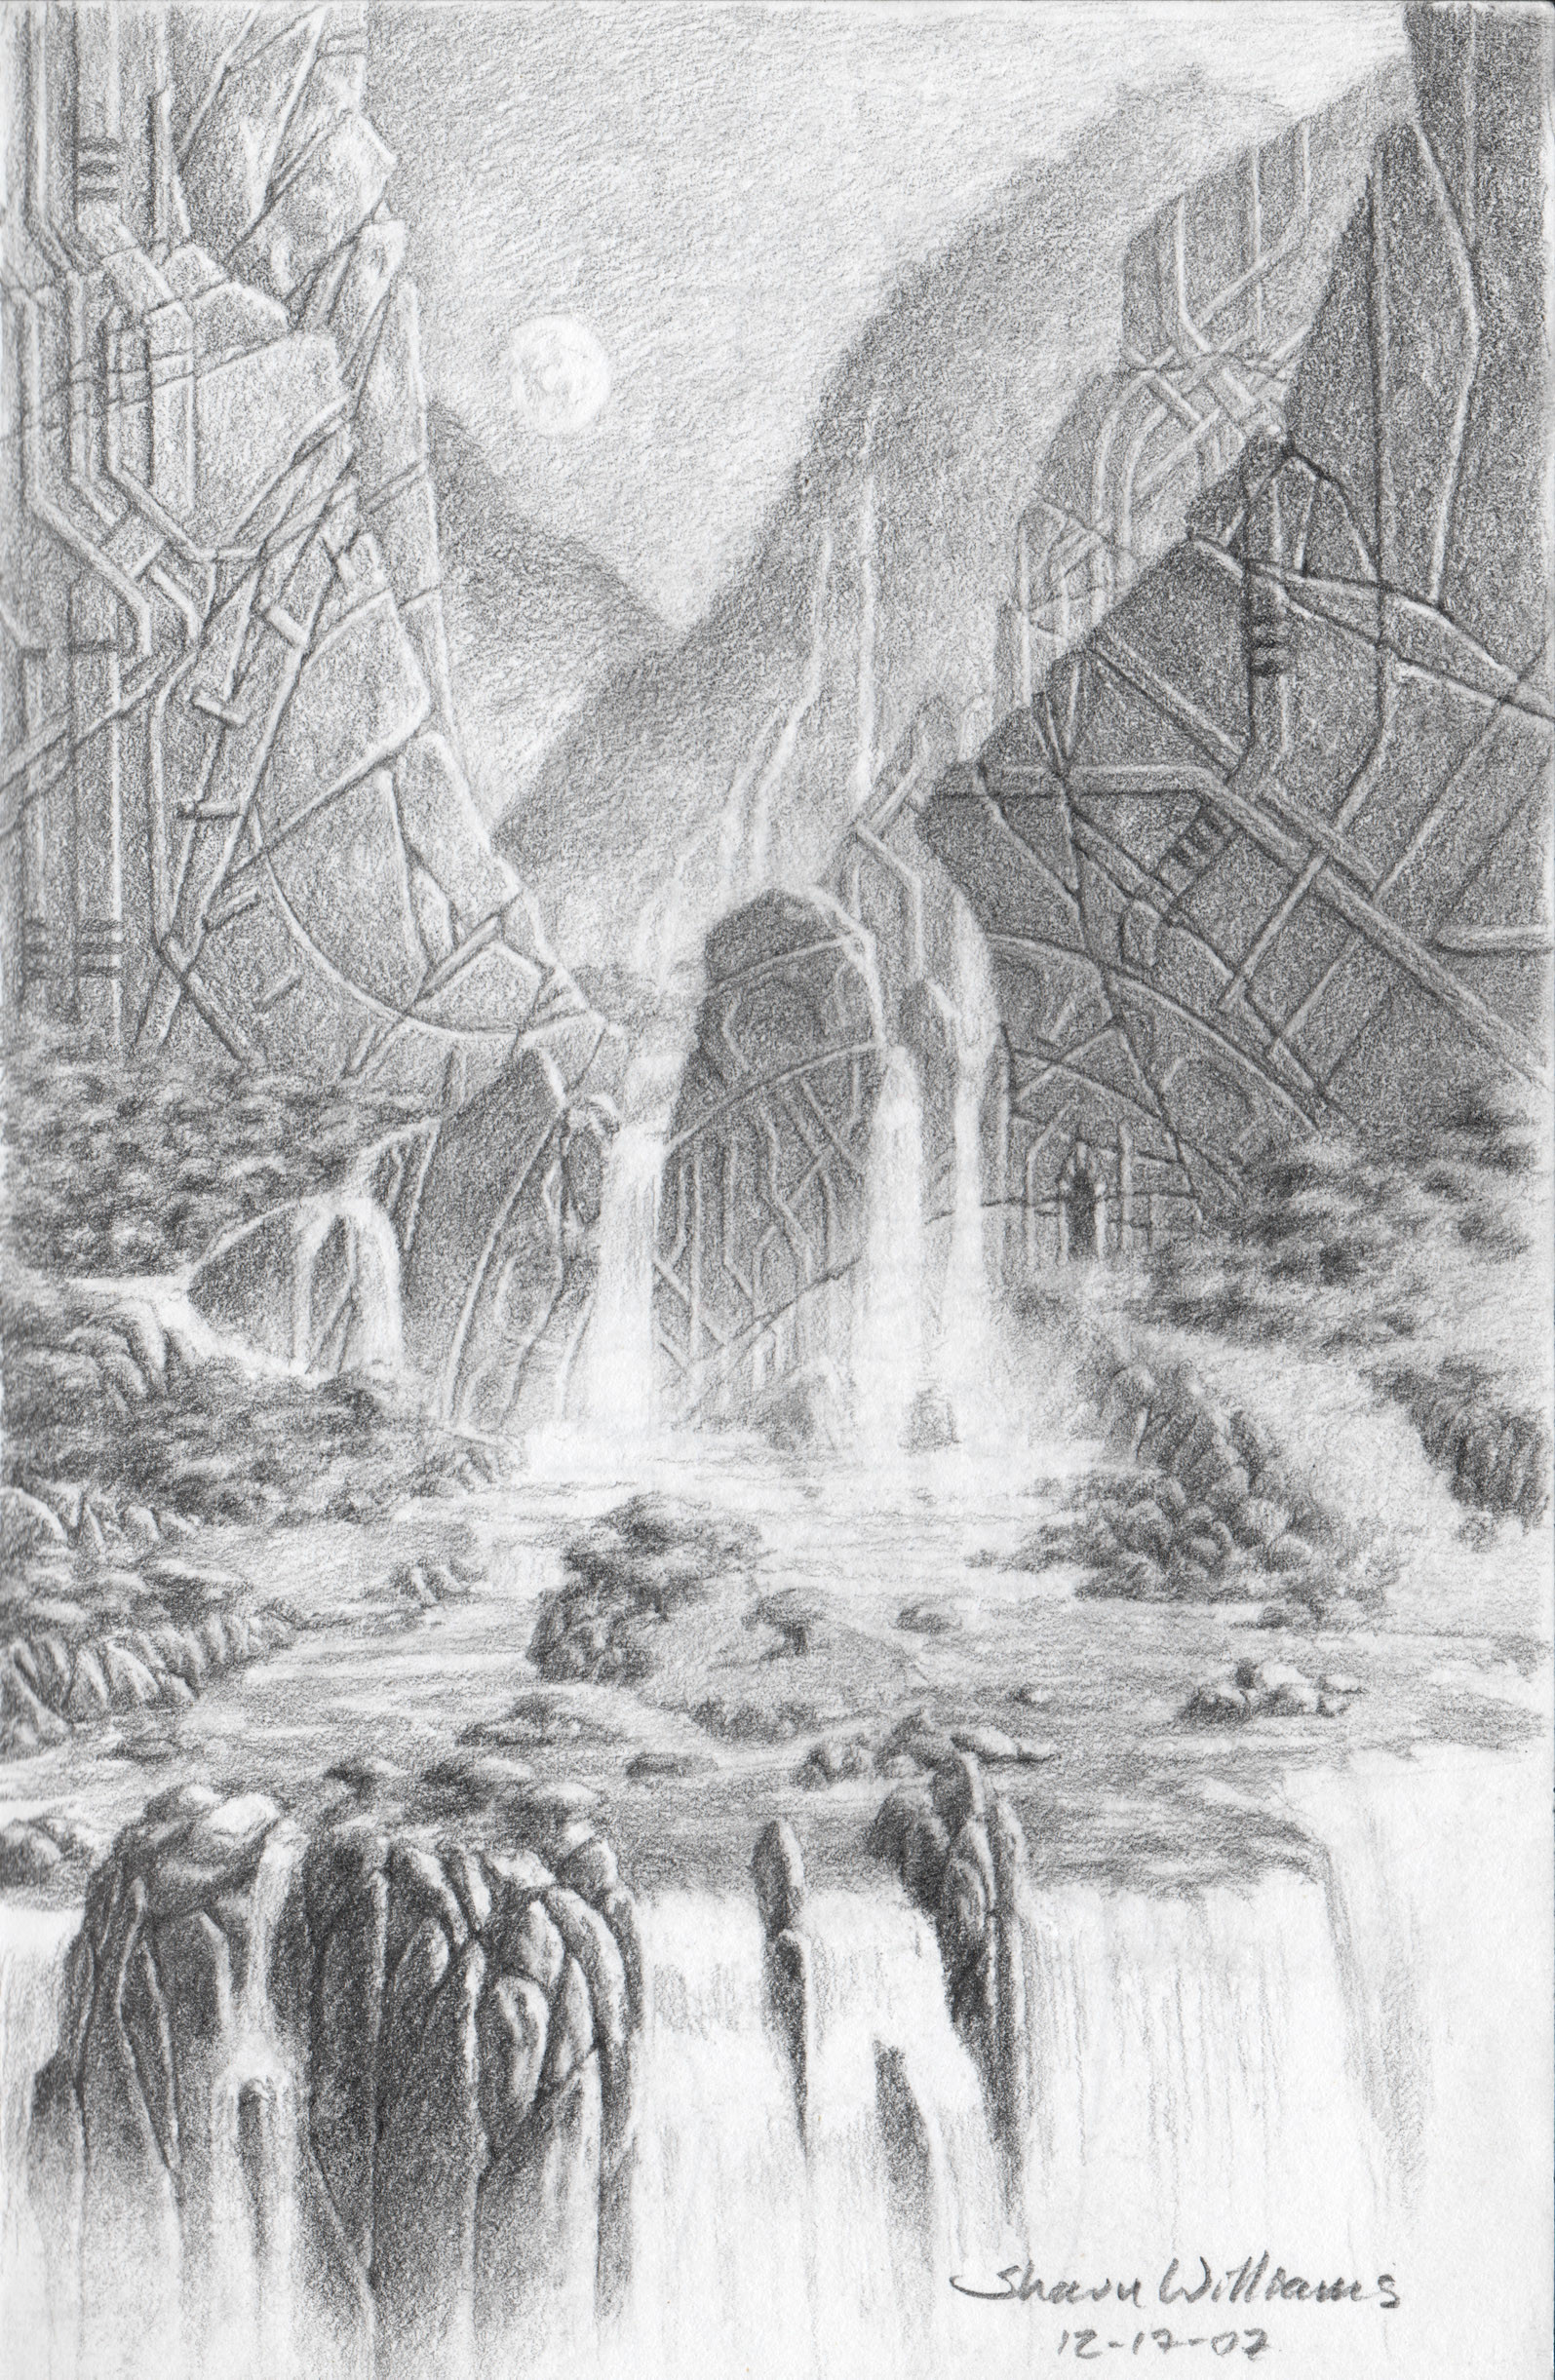 Shaun williams waterfall sketch concept